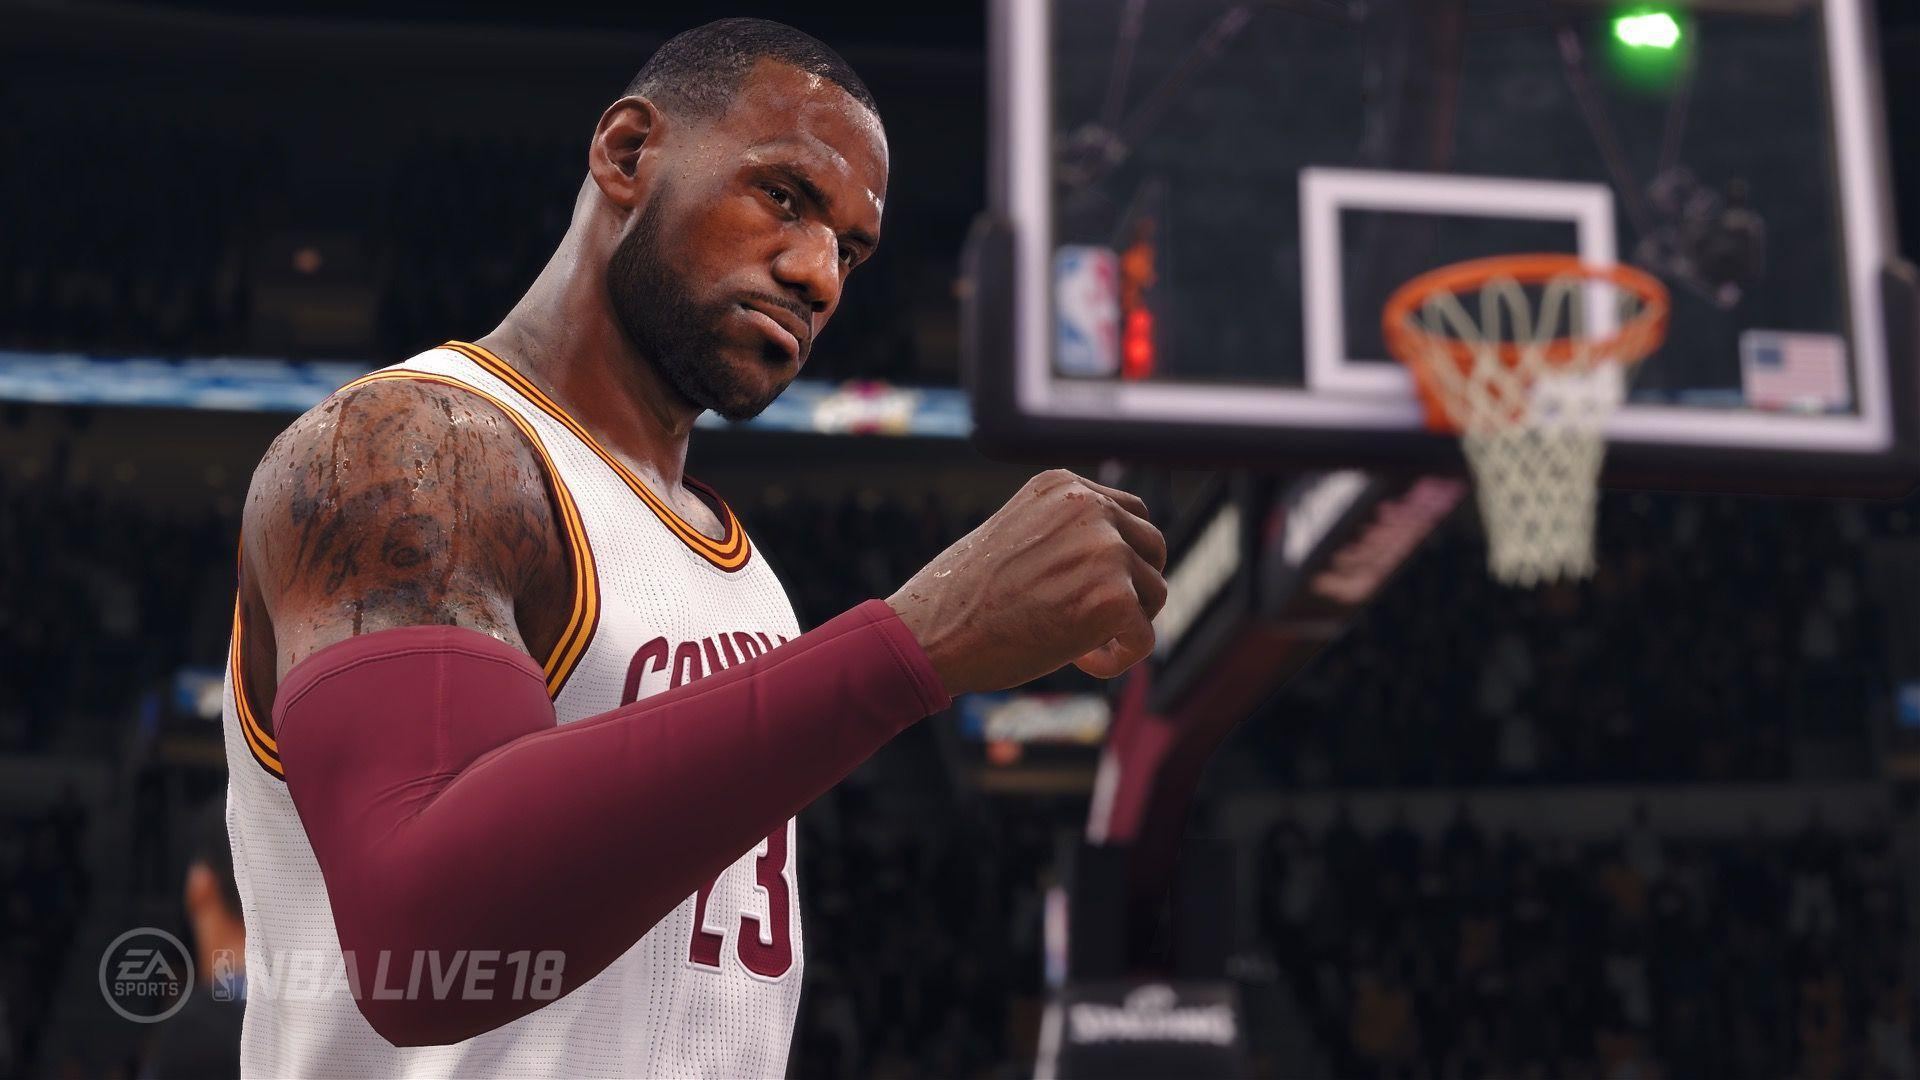 NBA Live 18 demo lets you carry over progress to the full game